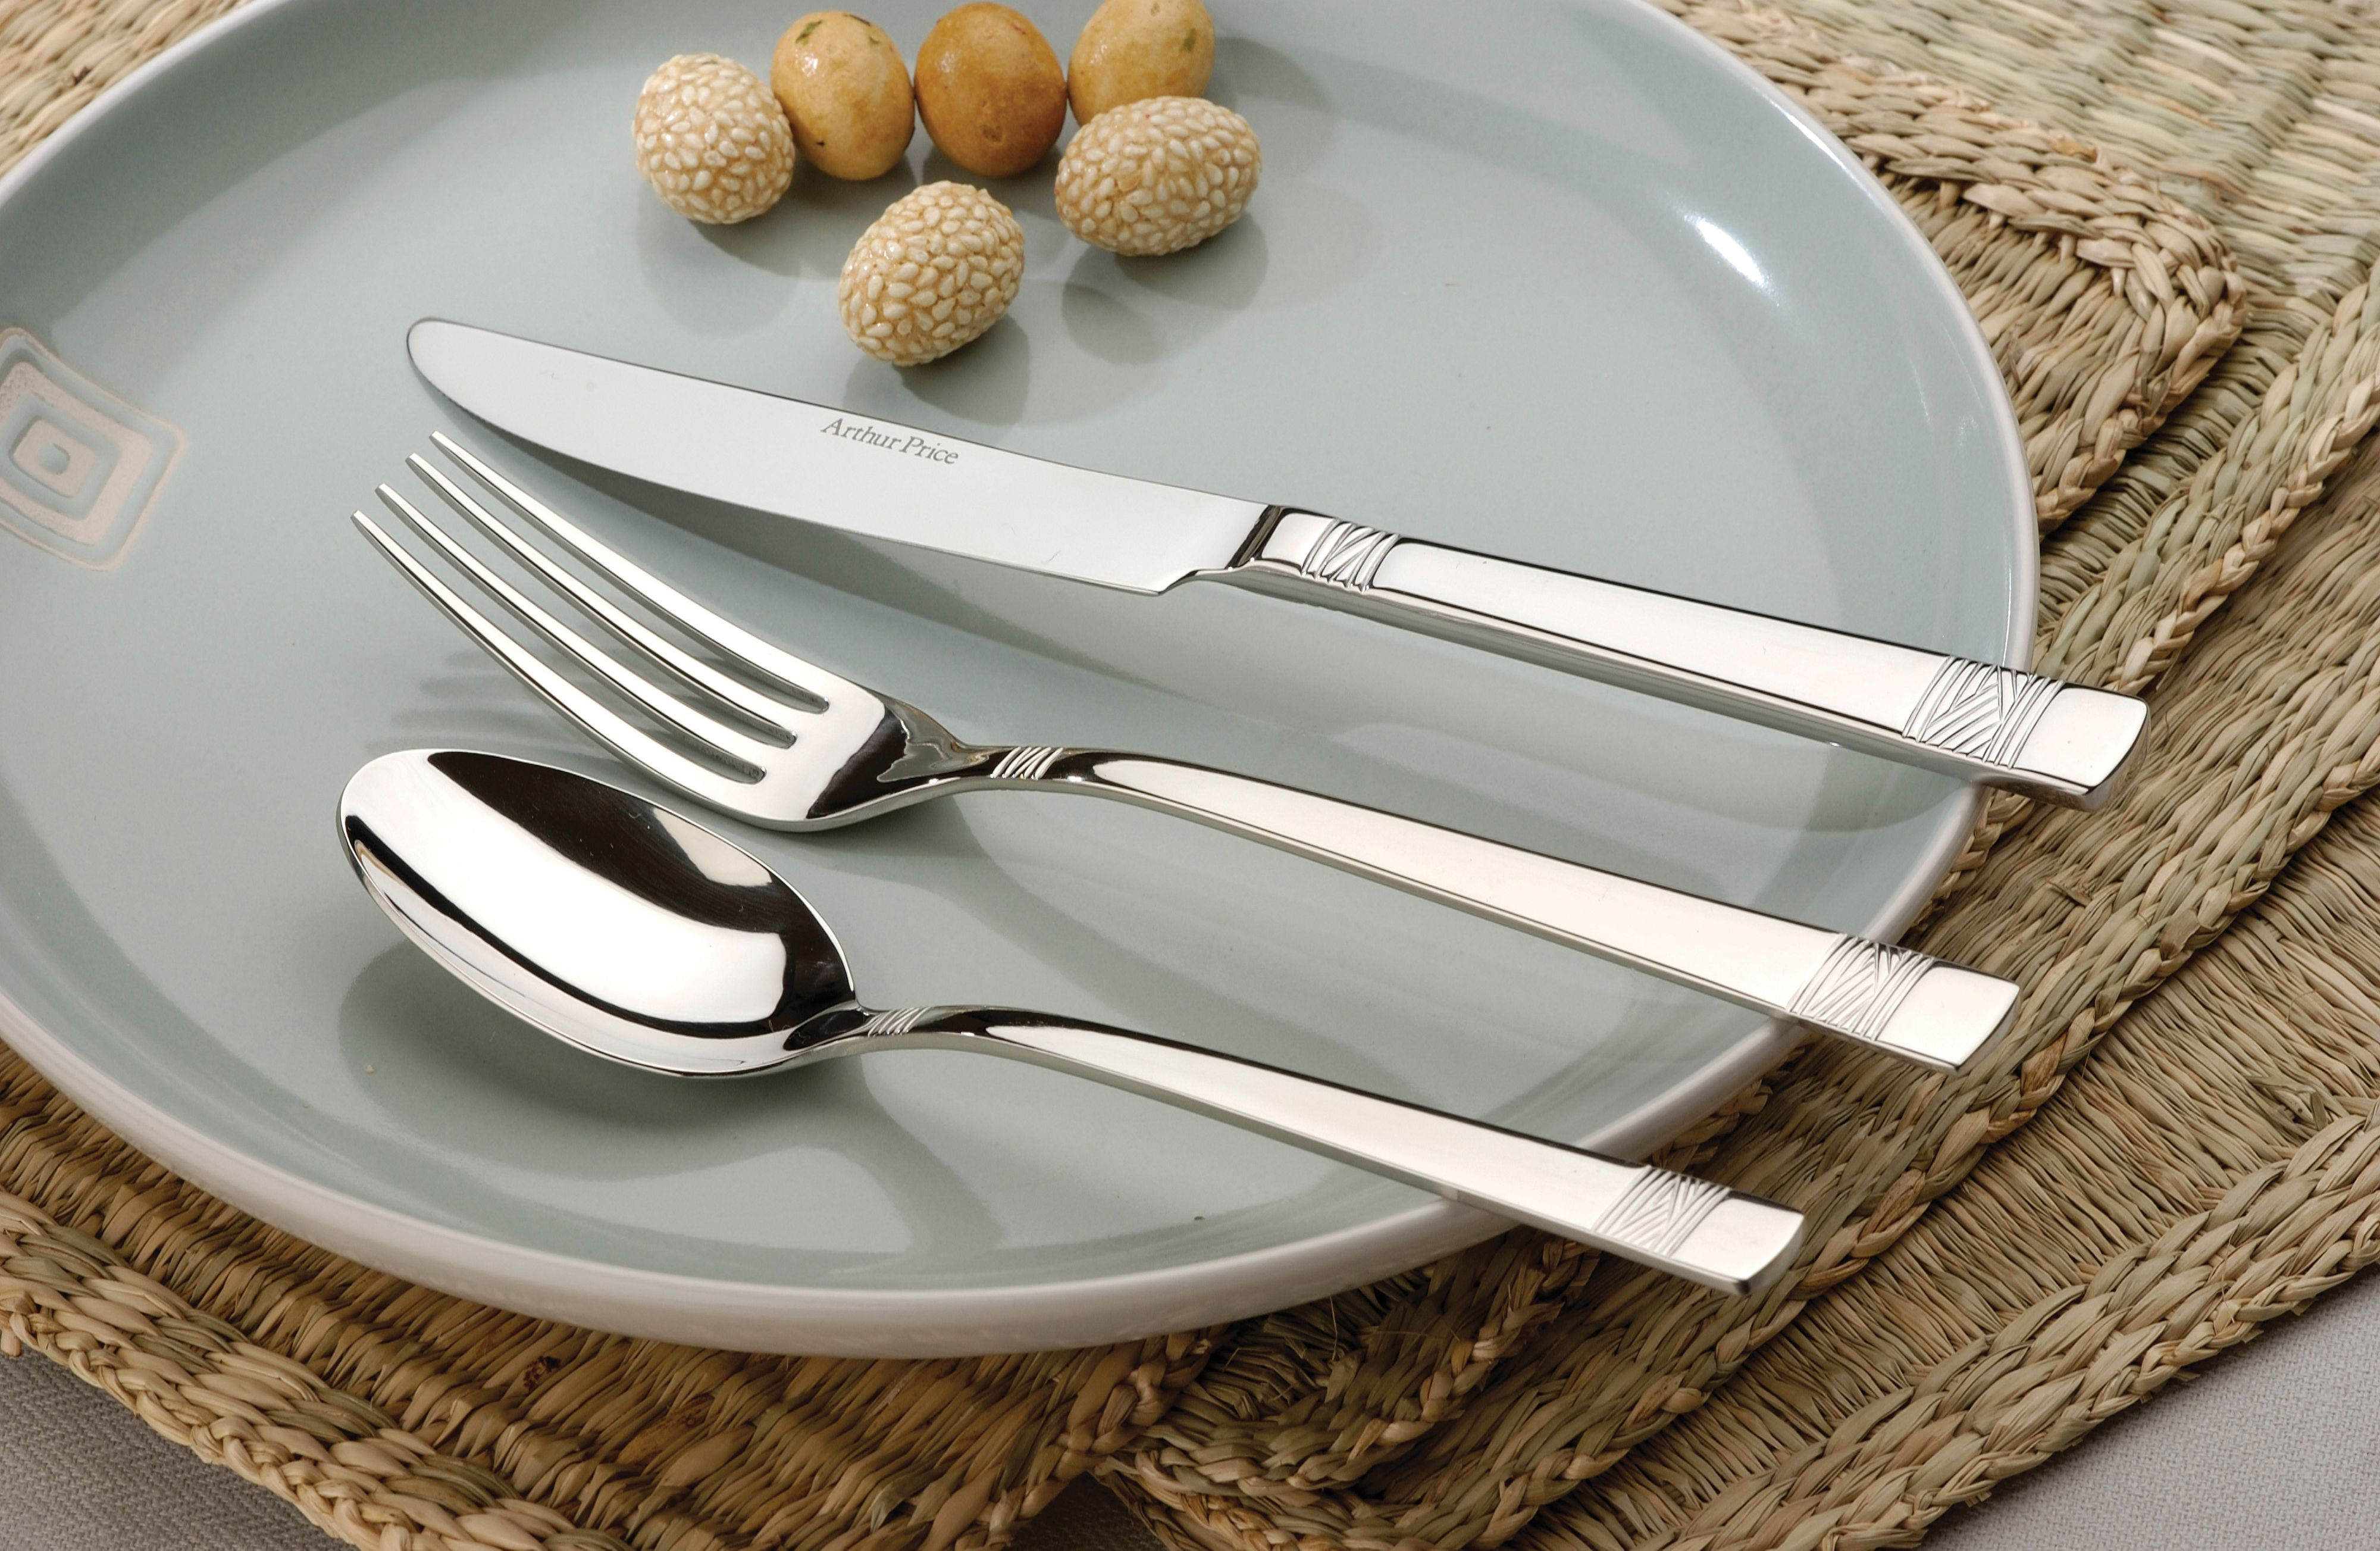 Fusion stainless steel 7 pce place setting